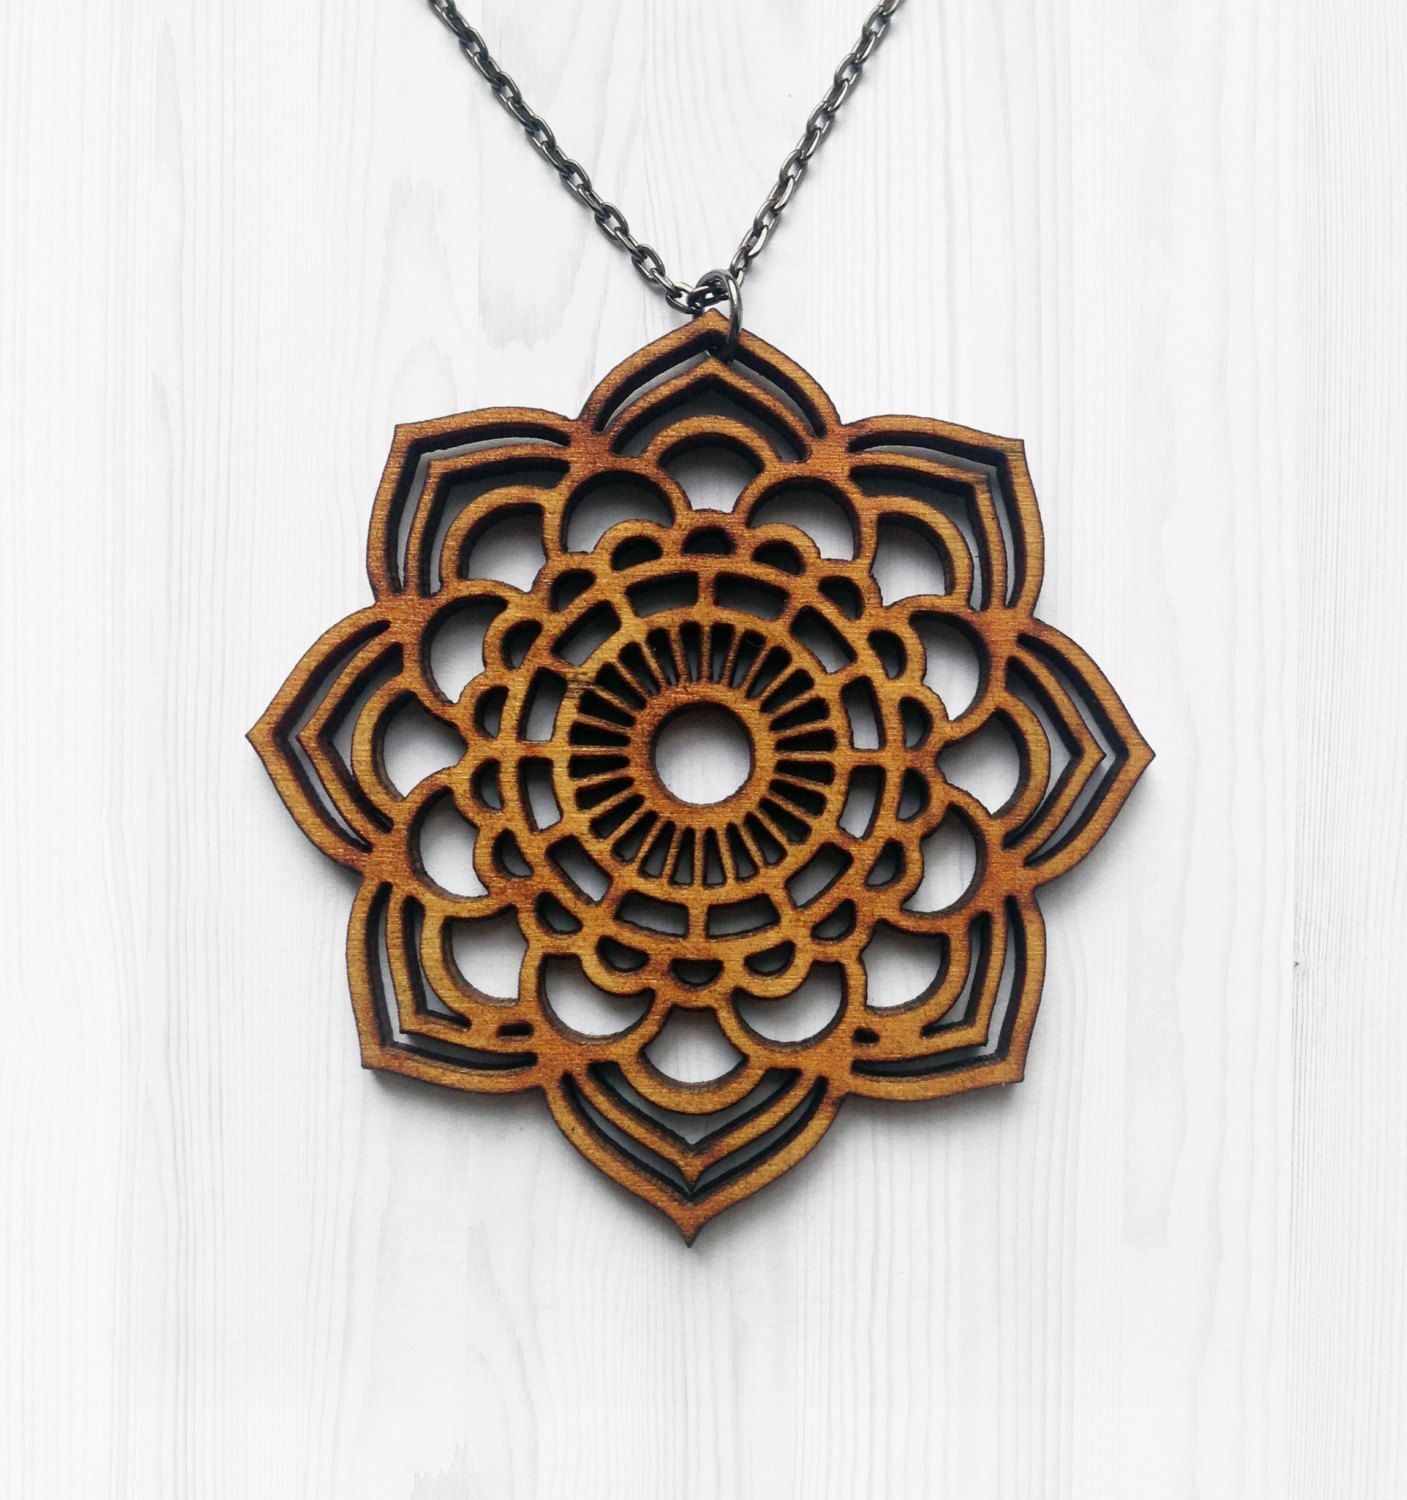 Mandala statement necklace wooden necklace laser cut jewelry laser